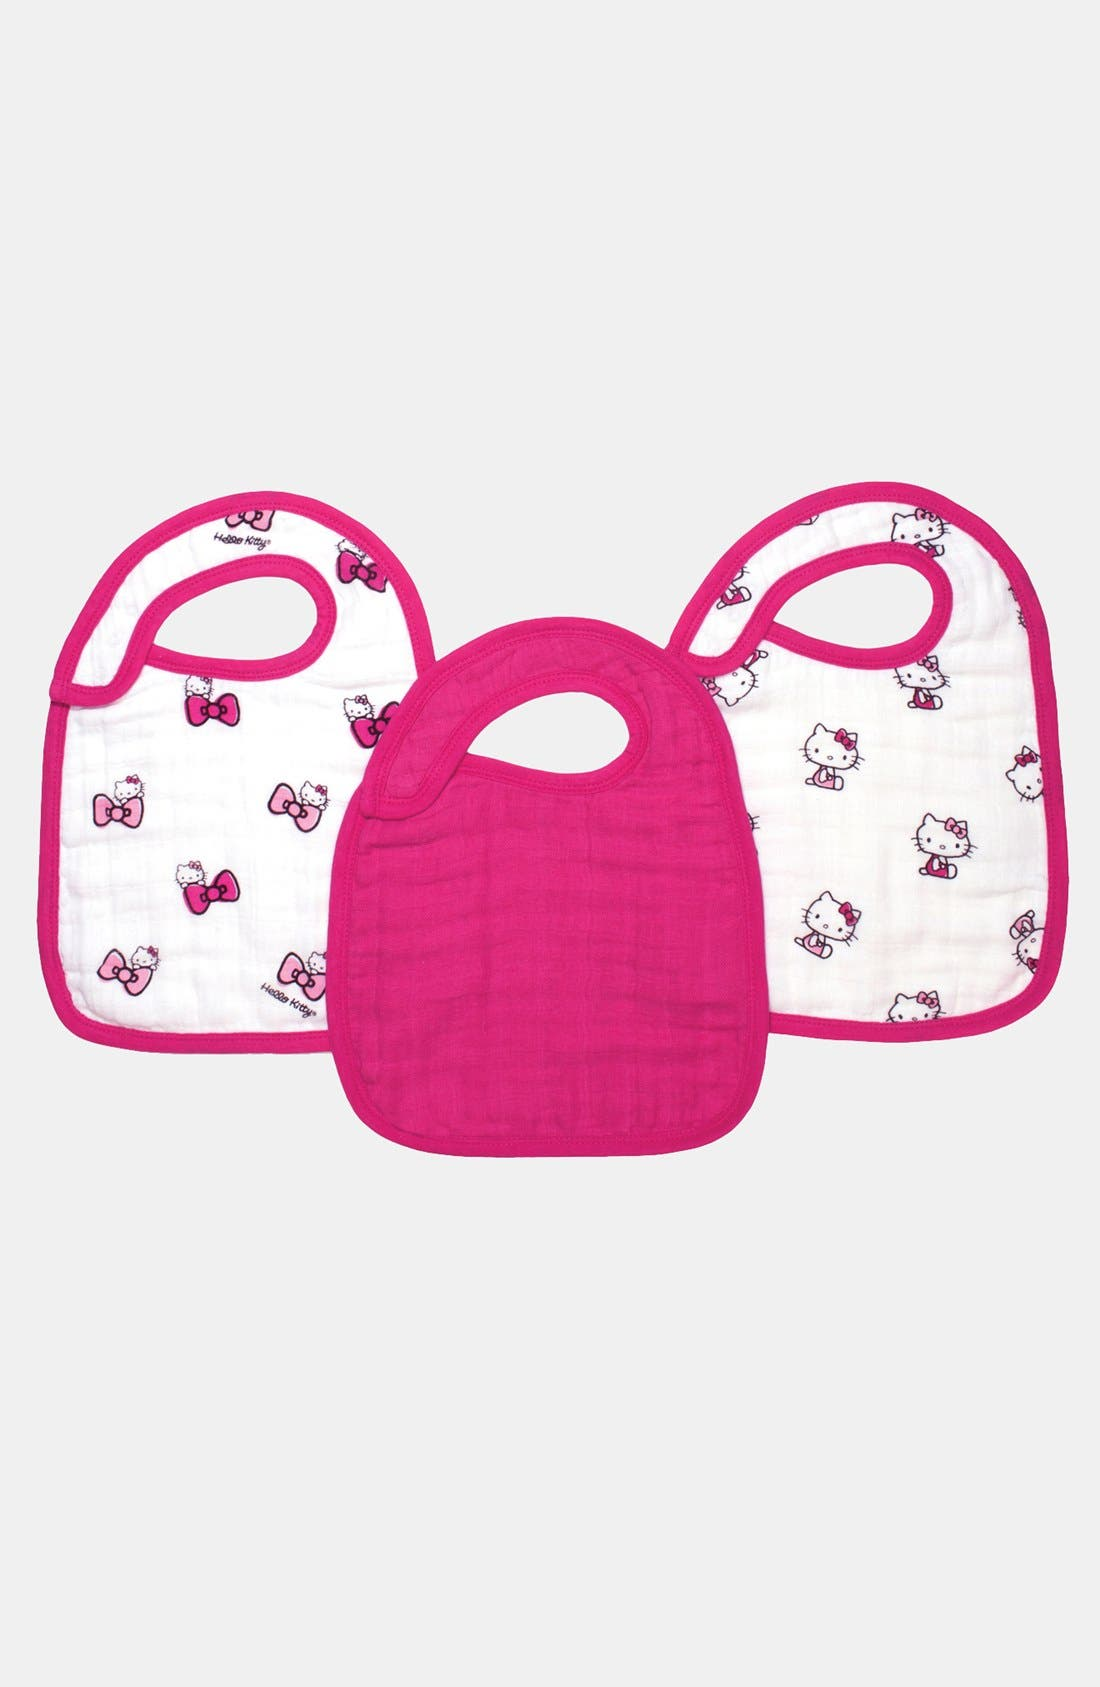 Alternate Image 1 Selected - aden + anais Hello Kitty® Snap Bibs (3-pack)